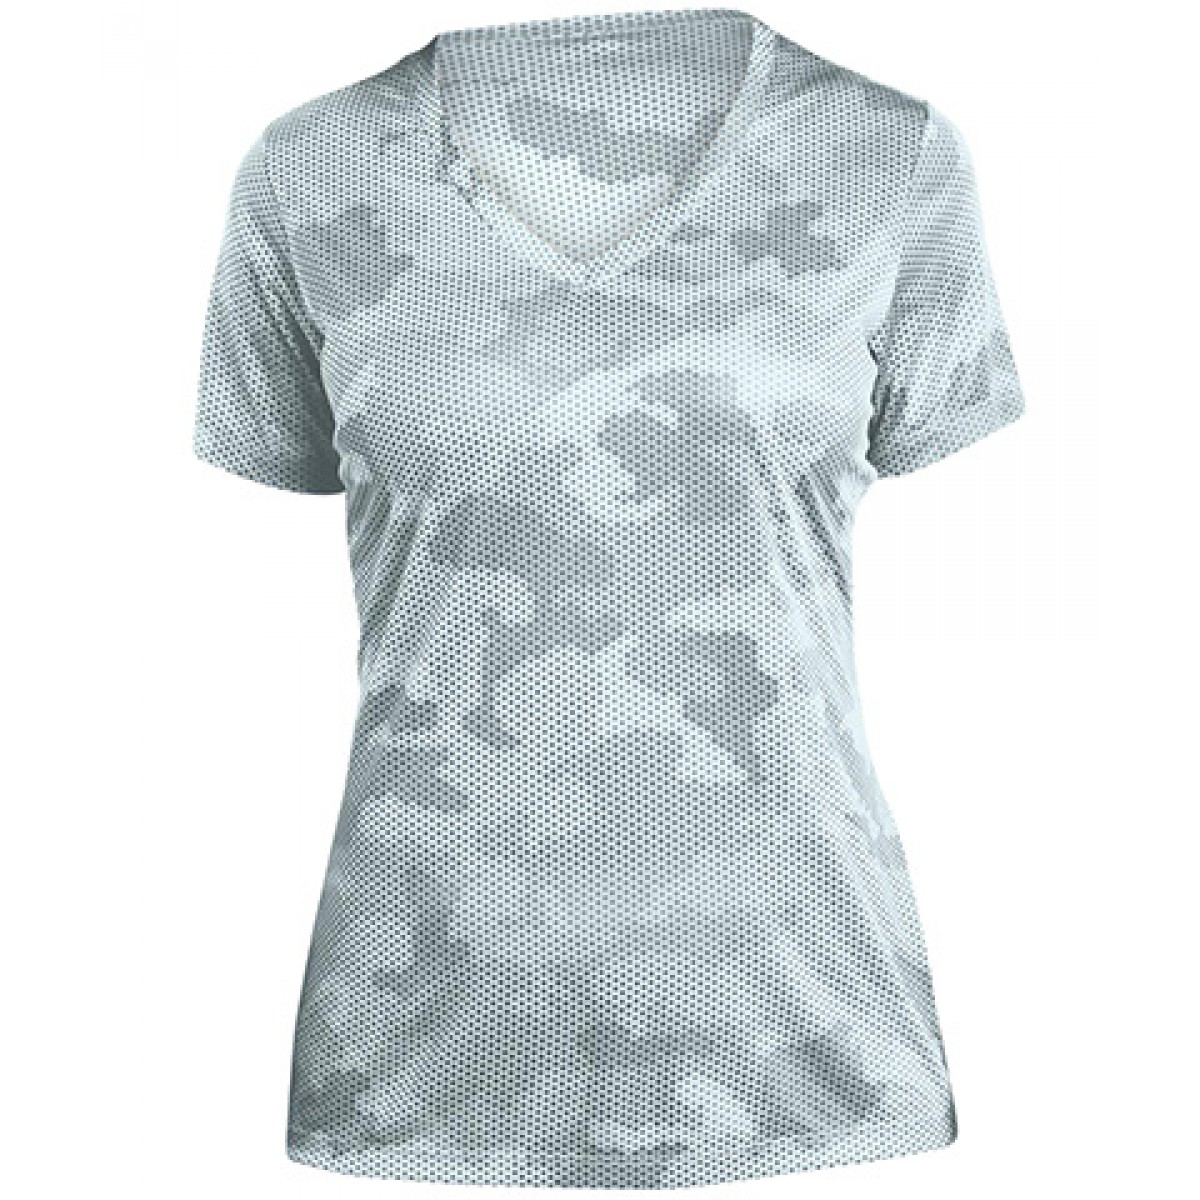 Ladies CamoHex V-Neck Tee-White-XL